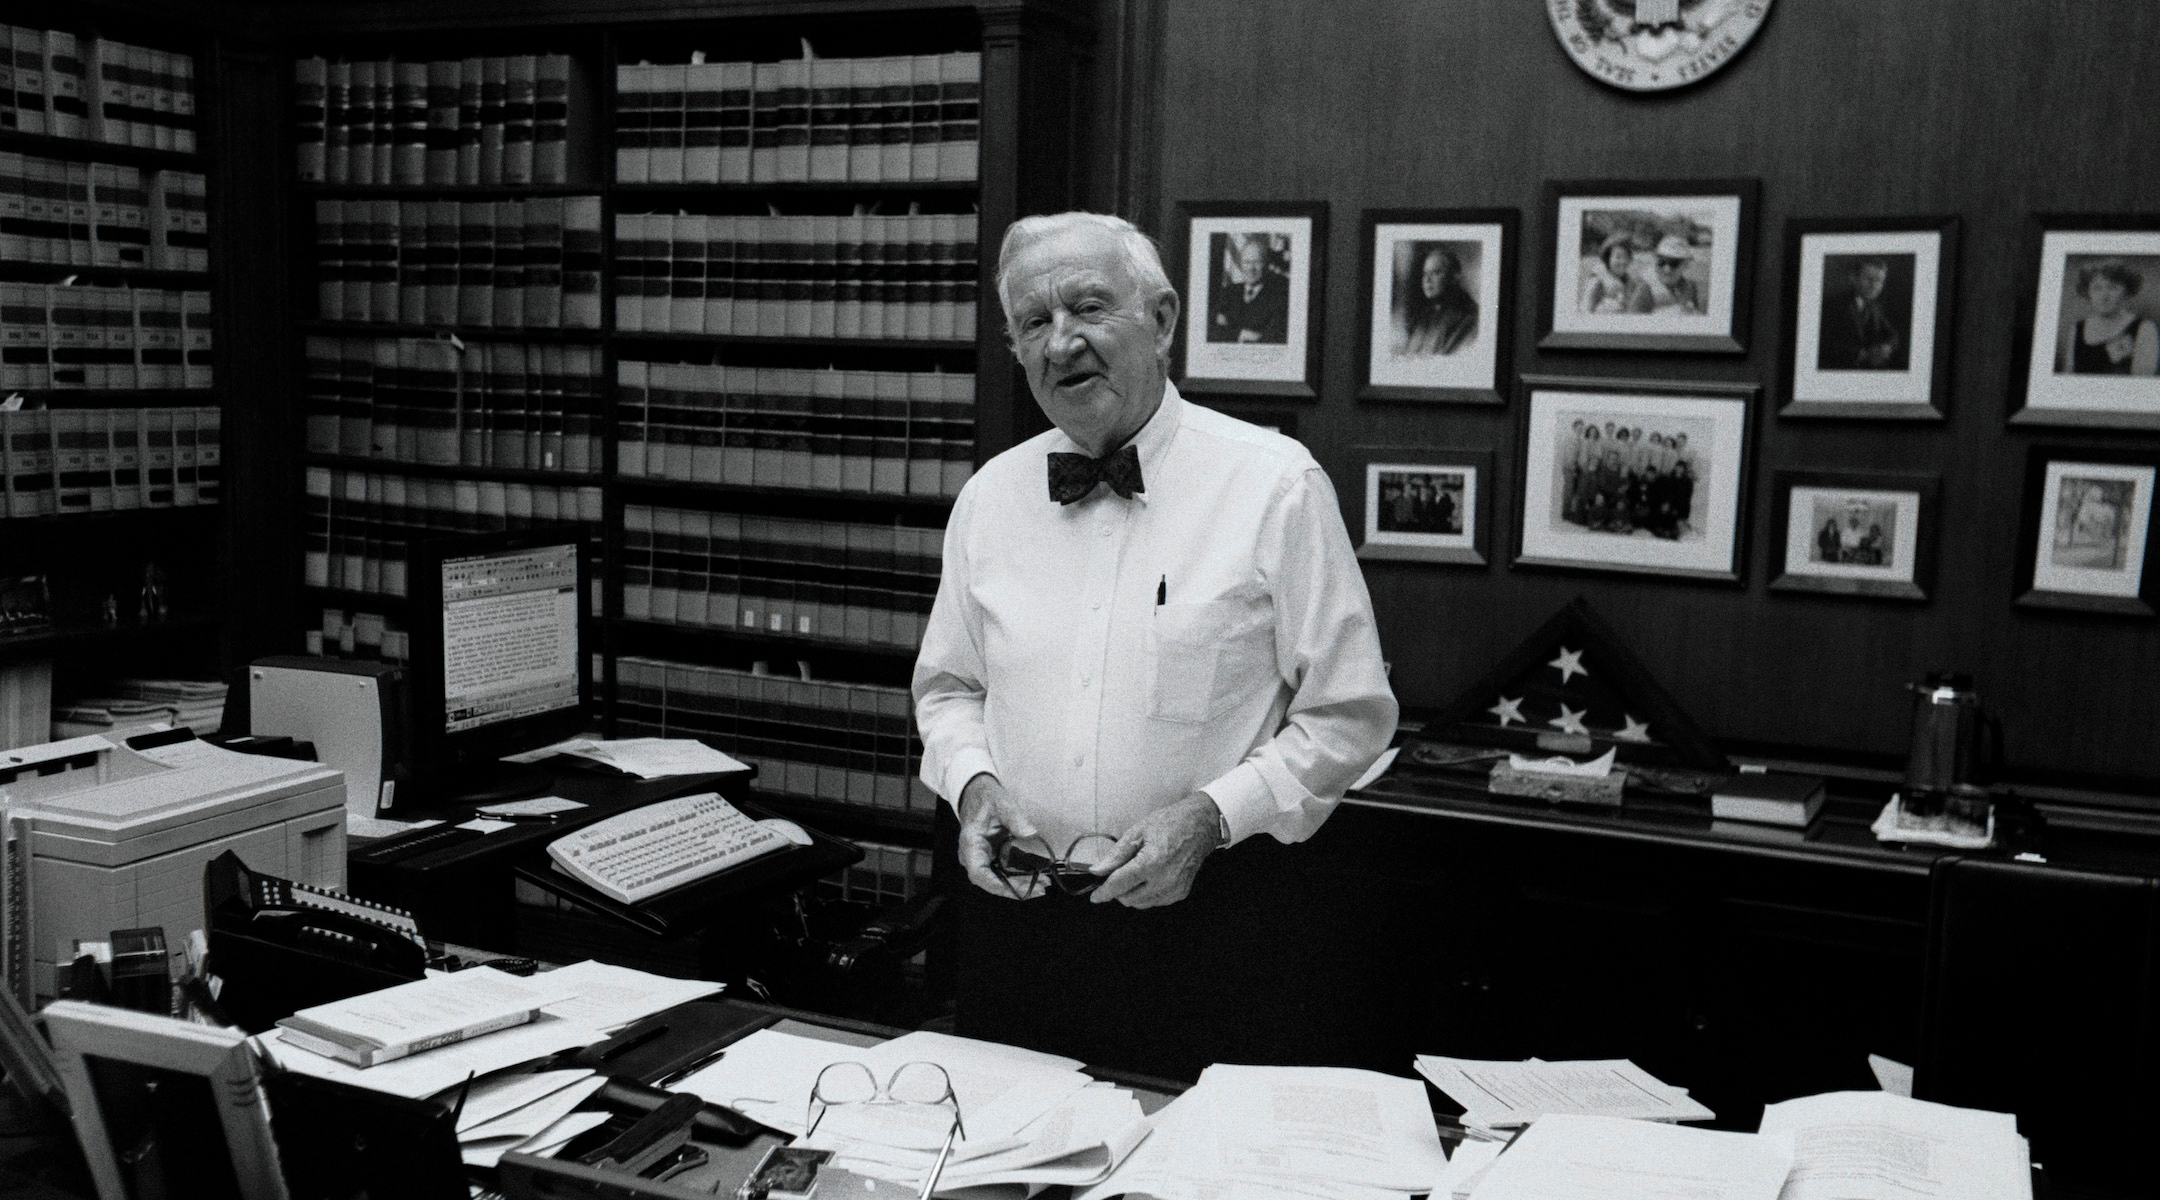 Supreme Court Justice John Paul Stevens poses for a portrait in his chambers at the Supreme Court offices, June 17, 2002. (David Hume Kennerly/Getty Images)